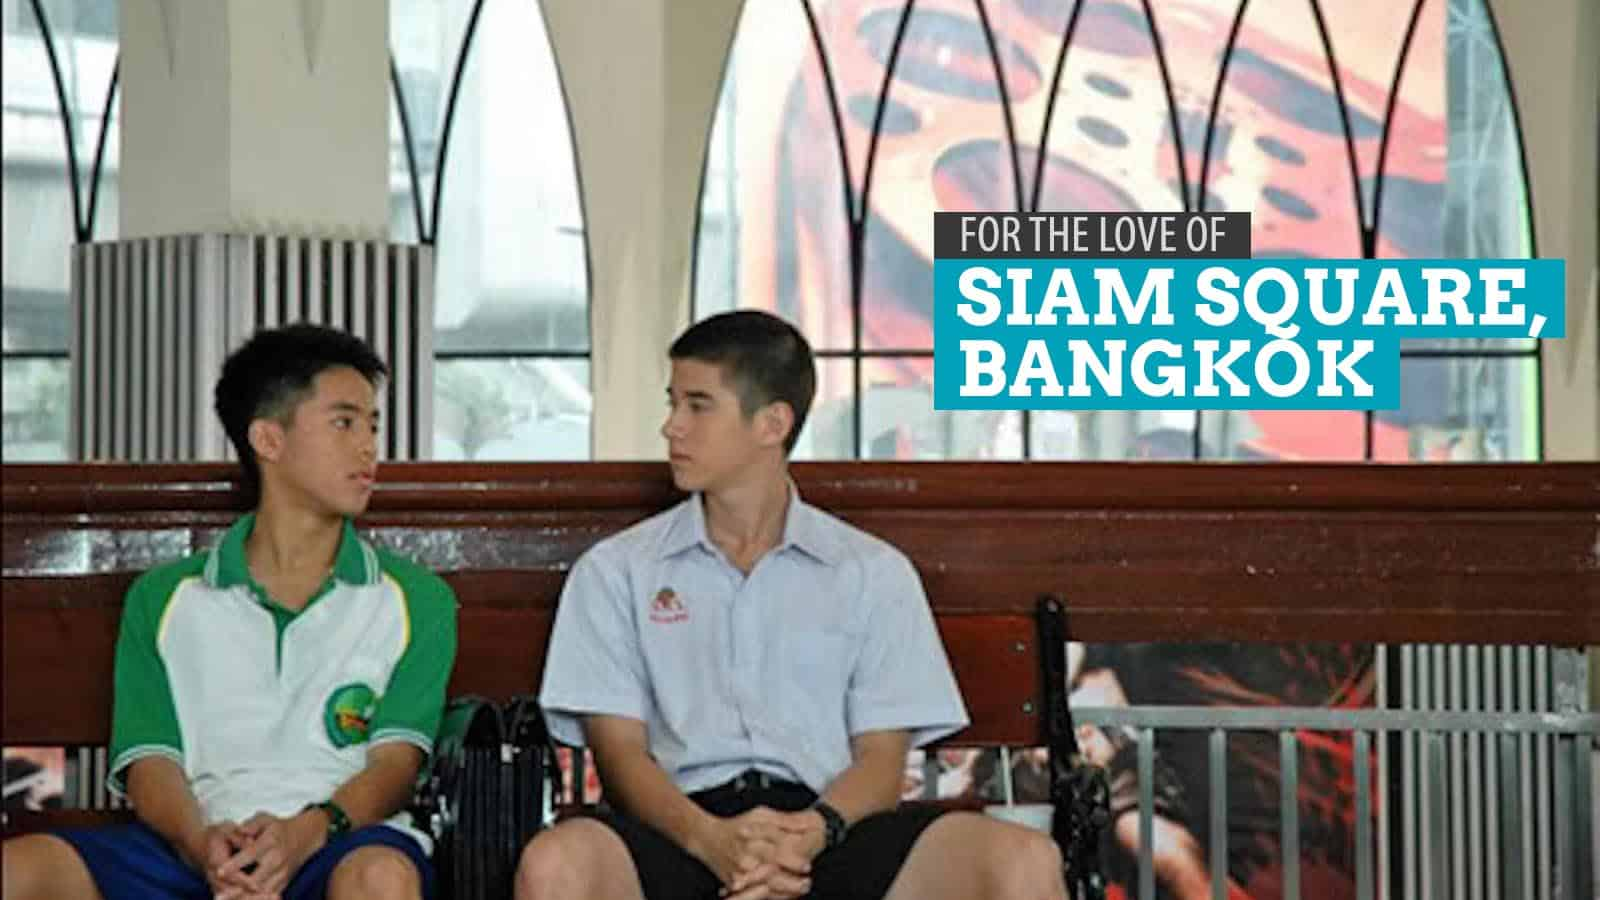 For the Love of Siam Square and Platinum Mall in Bangkok